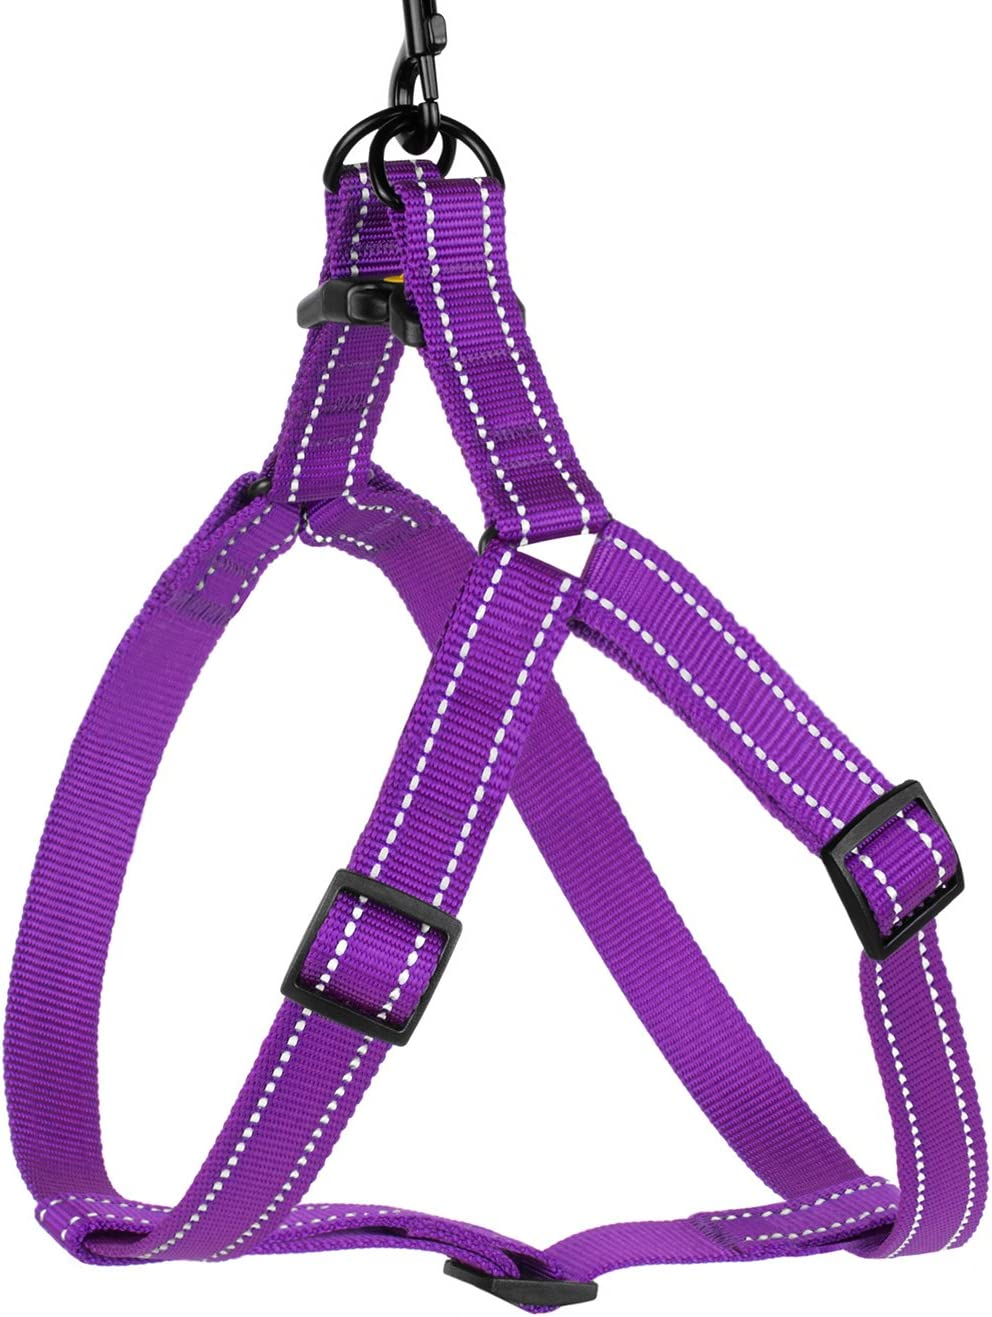 Comfort Adjustable Harnesses for Dogs Puppy Pink Black Red Purple Mint Green Orange Blue CollarDirect Reflective Dog Harness Step in Small Medium Large for Outdoor Walking